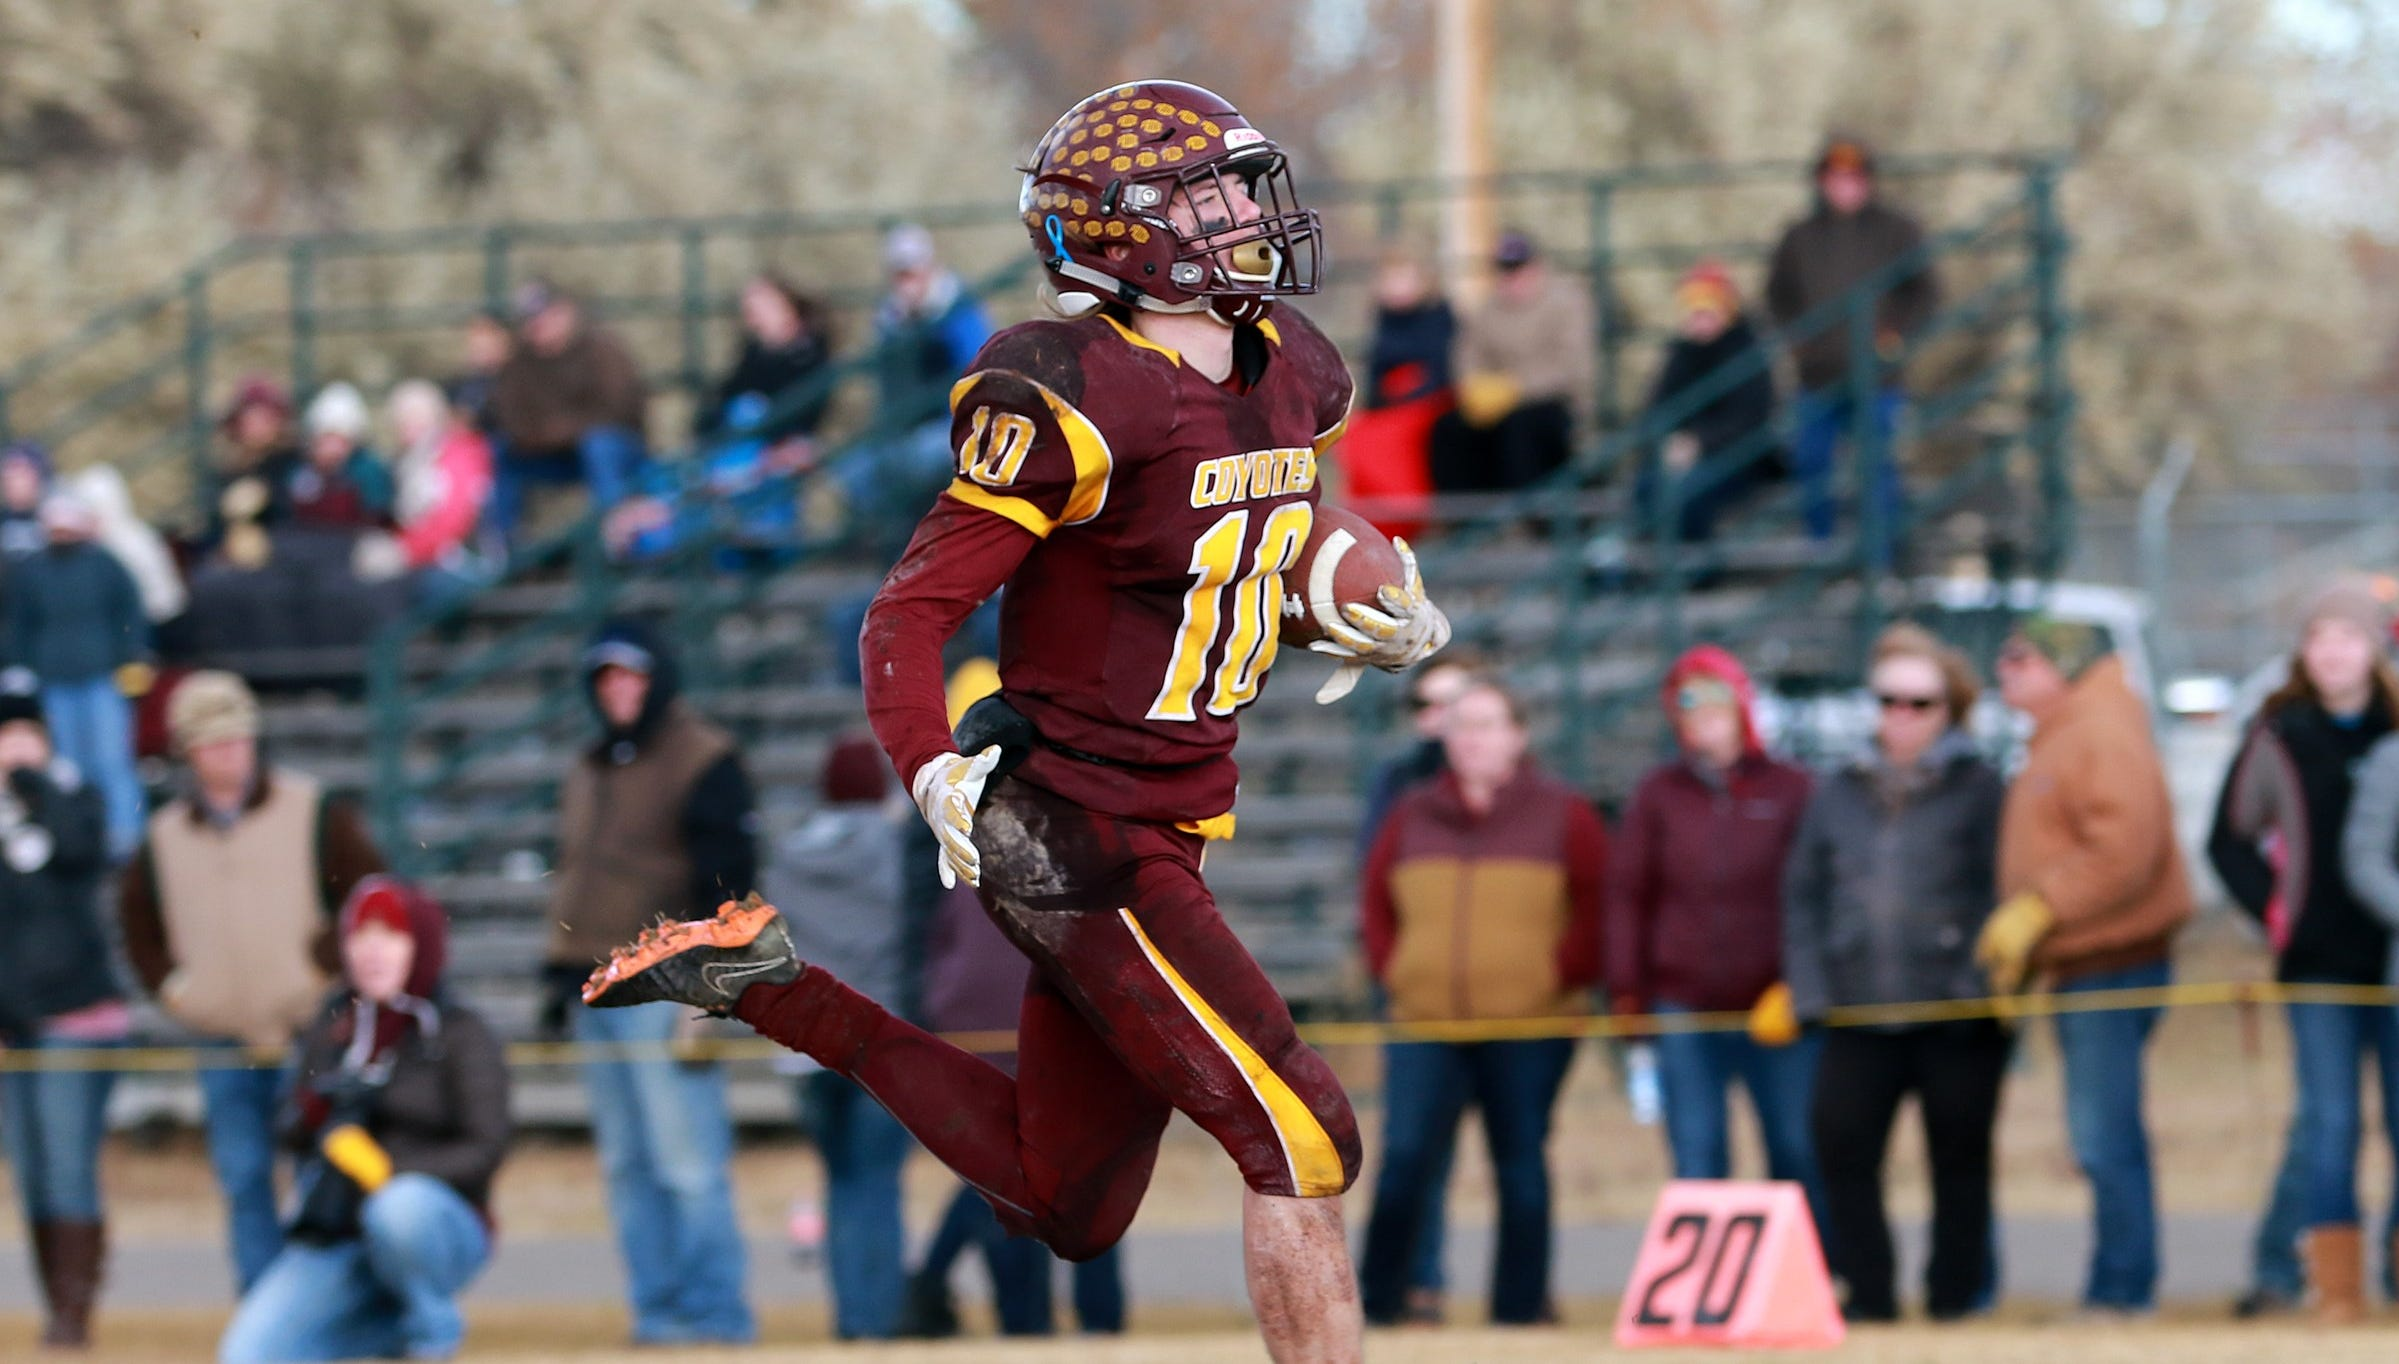 Look at the prep football playoff games of the last weekend, and look ahead to next week's semifinals.